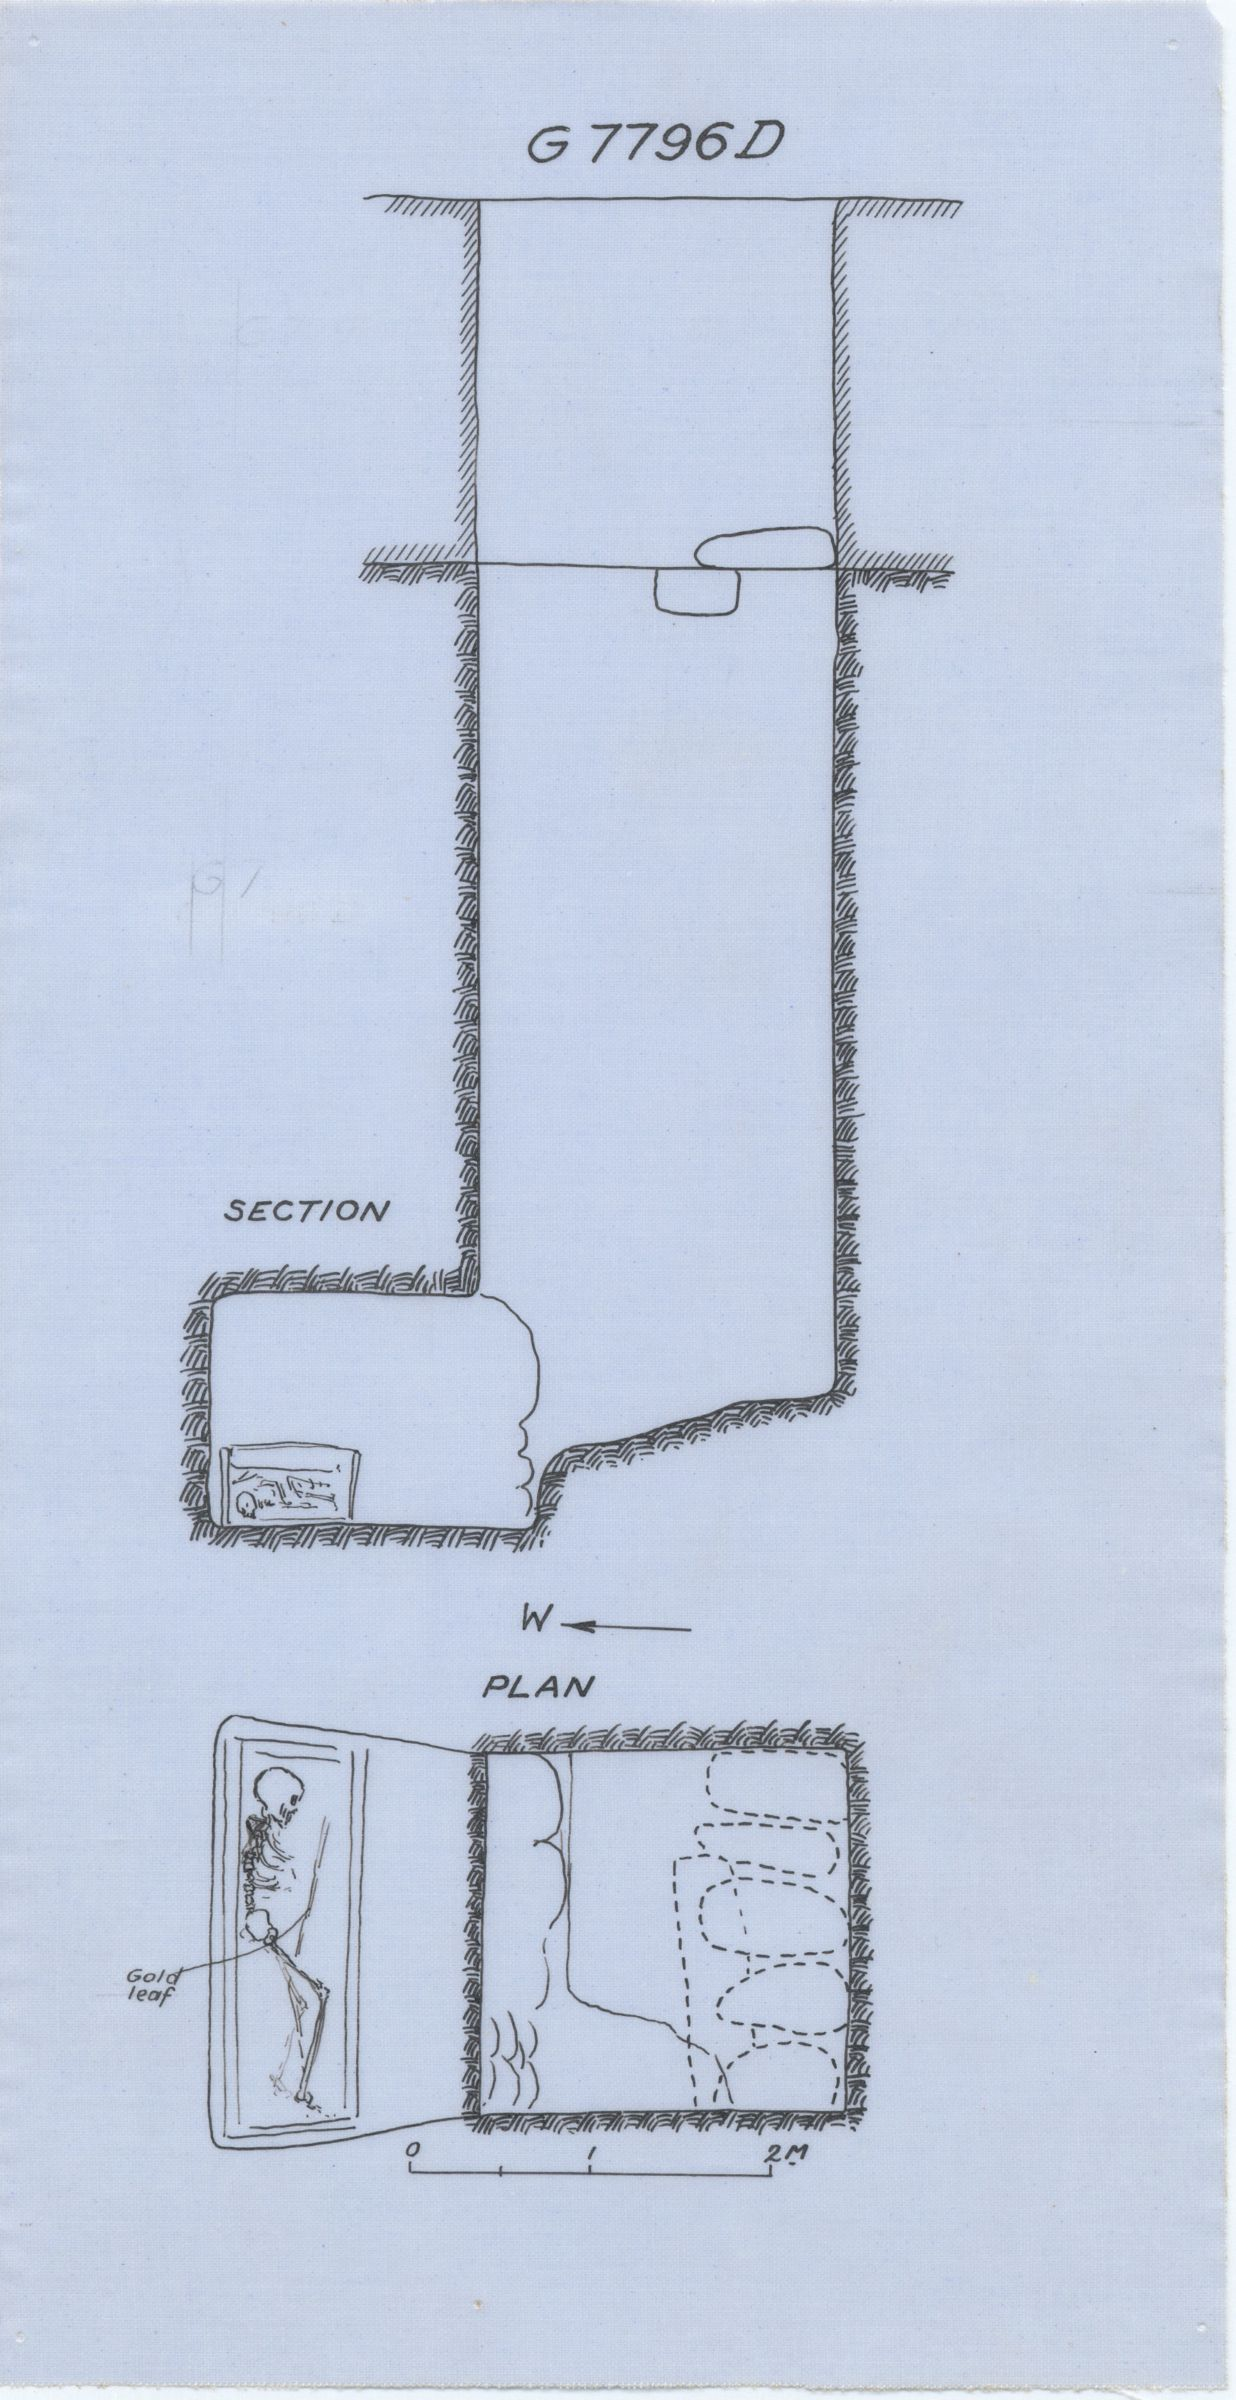 Maps and plans: G 7796, Shaft D